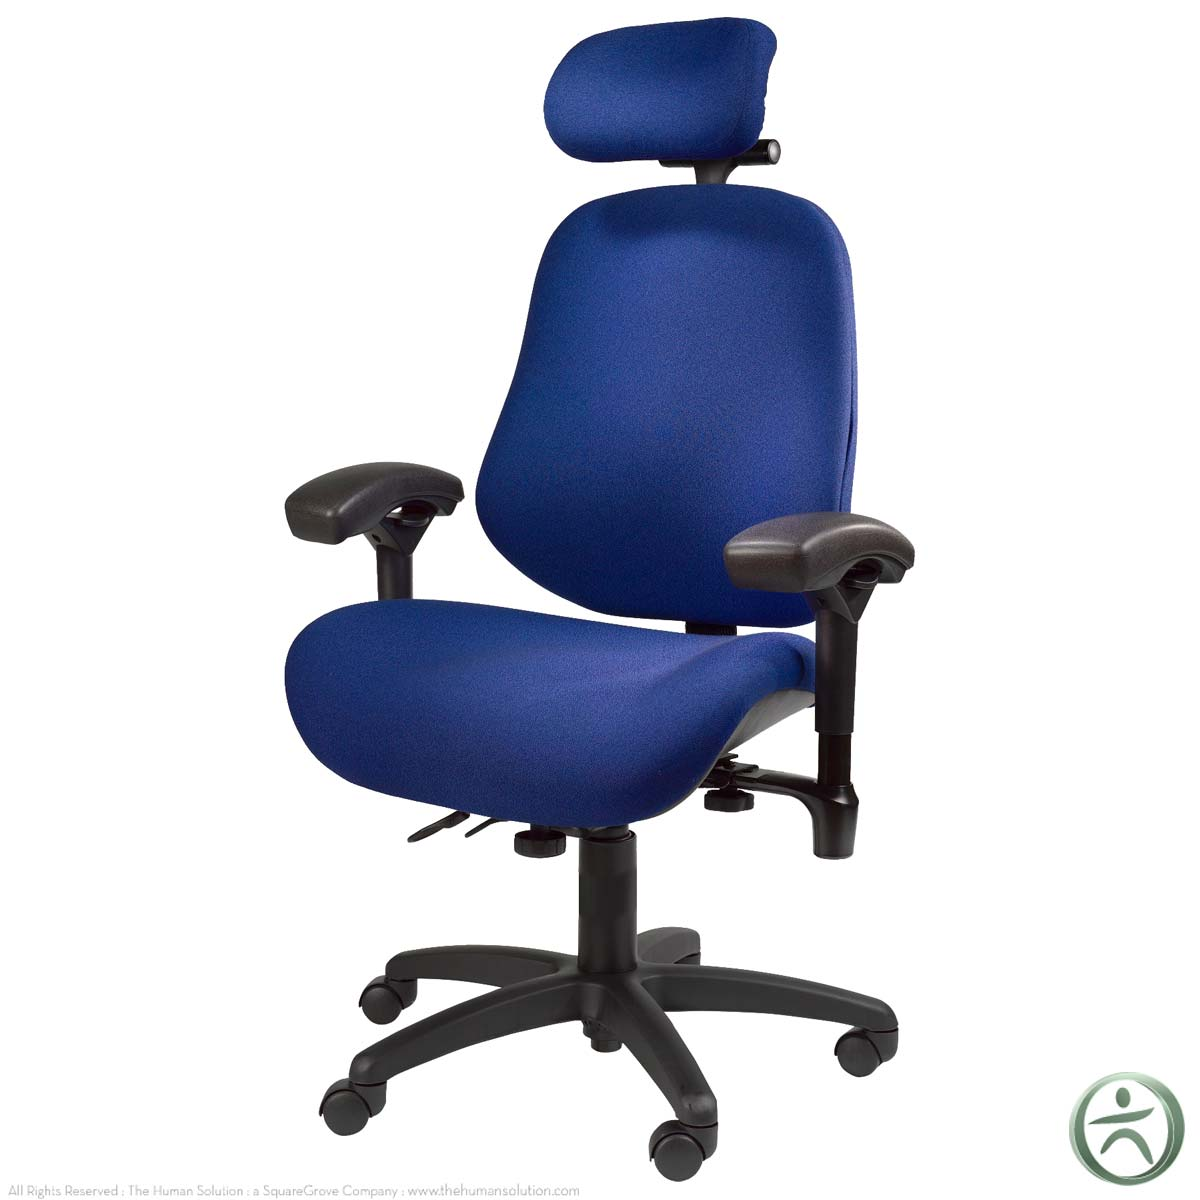 Shop BodyBilt 3504 High Back Executive Big & Tall Chairs